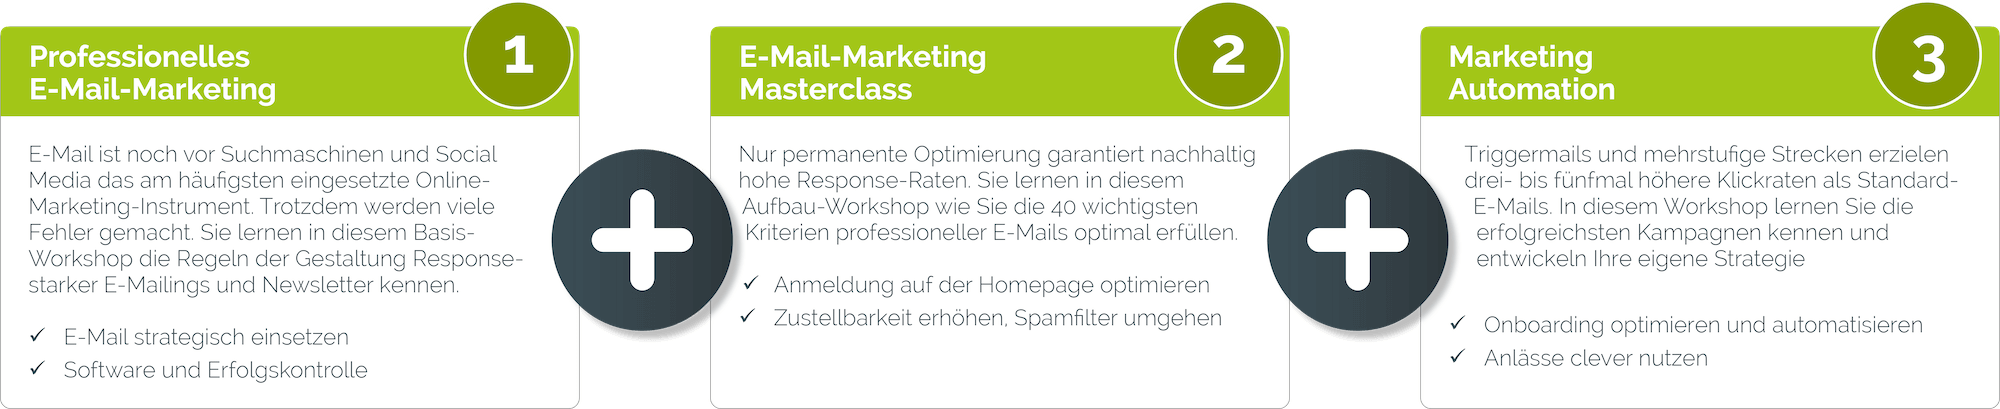 e mail marketing a bis z bundle lang - Unsere Seminar-Pakete